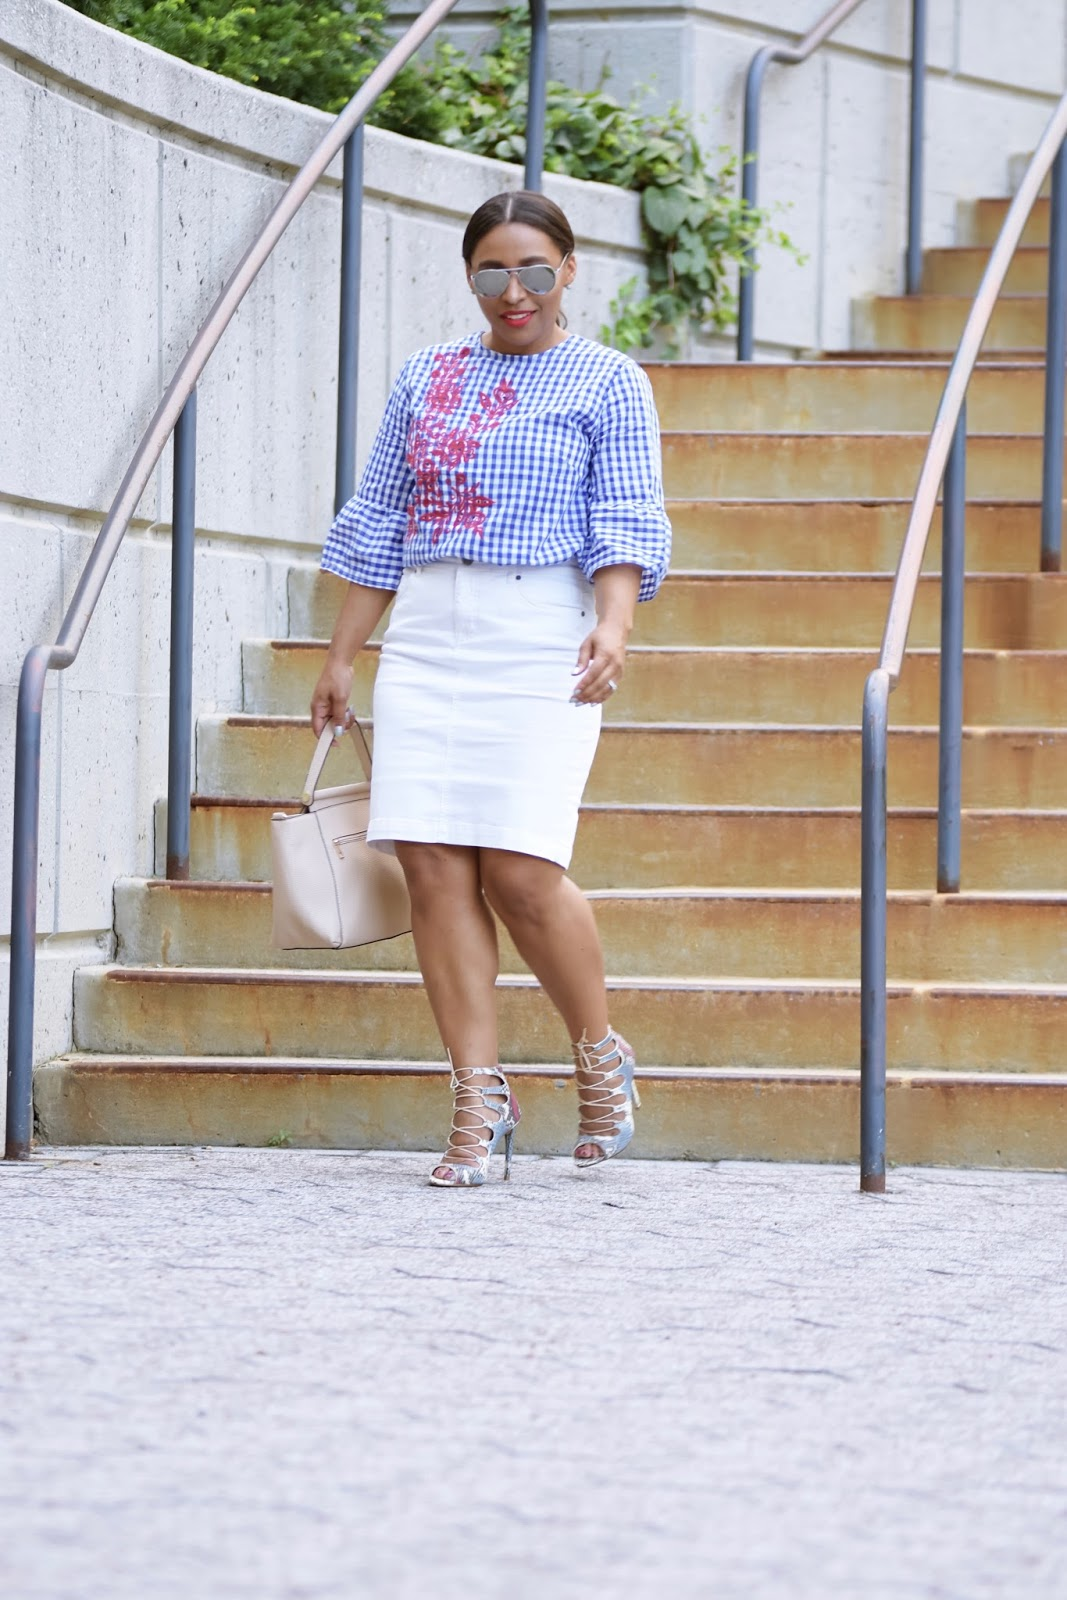 bell sleeve top, embrodiery, white skirt, zara shoes, dominican bloggers, dc bloggers, latina bloggers, armandhugon, fall outfit ideas, fall fashion